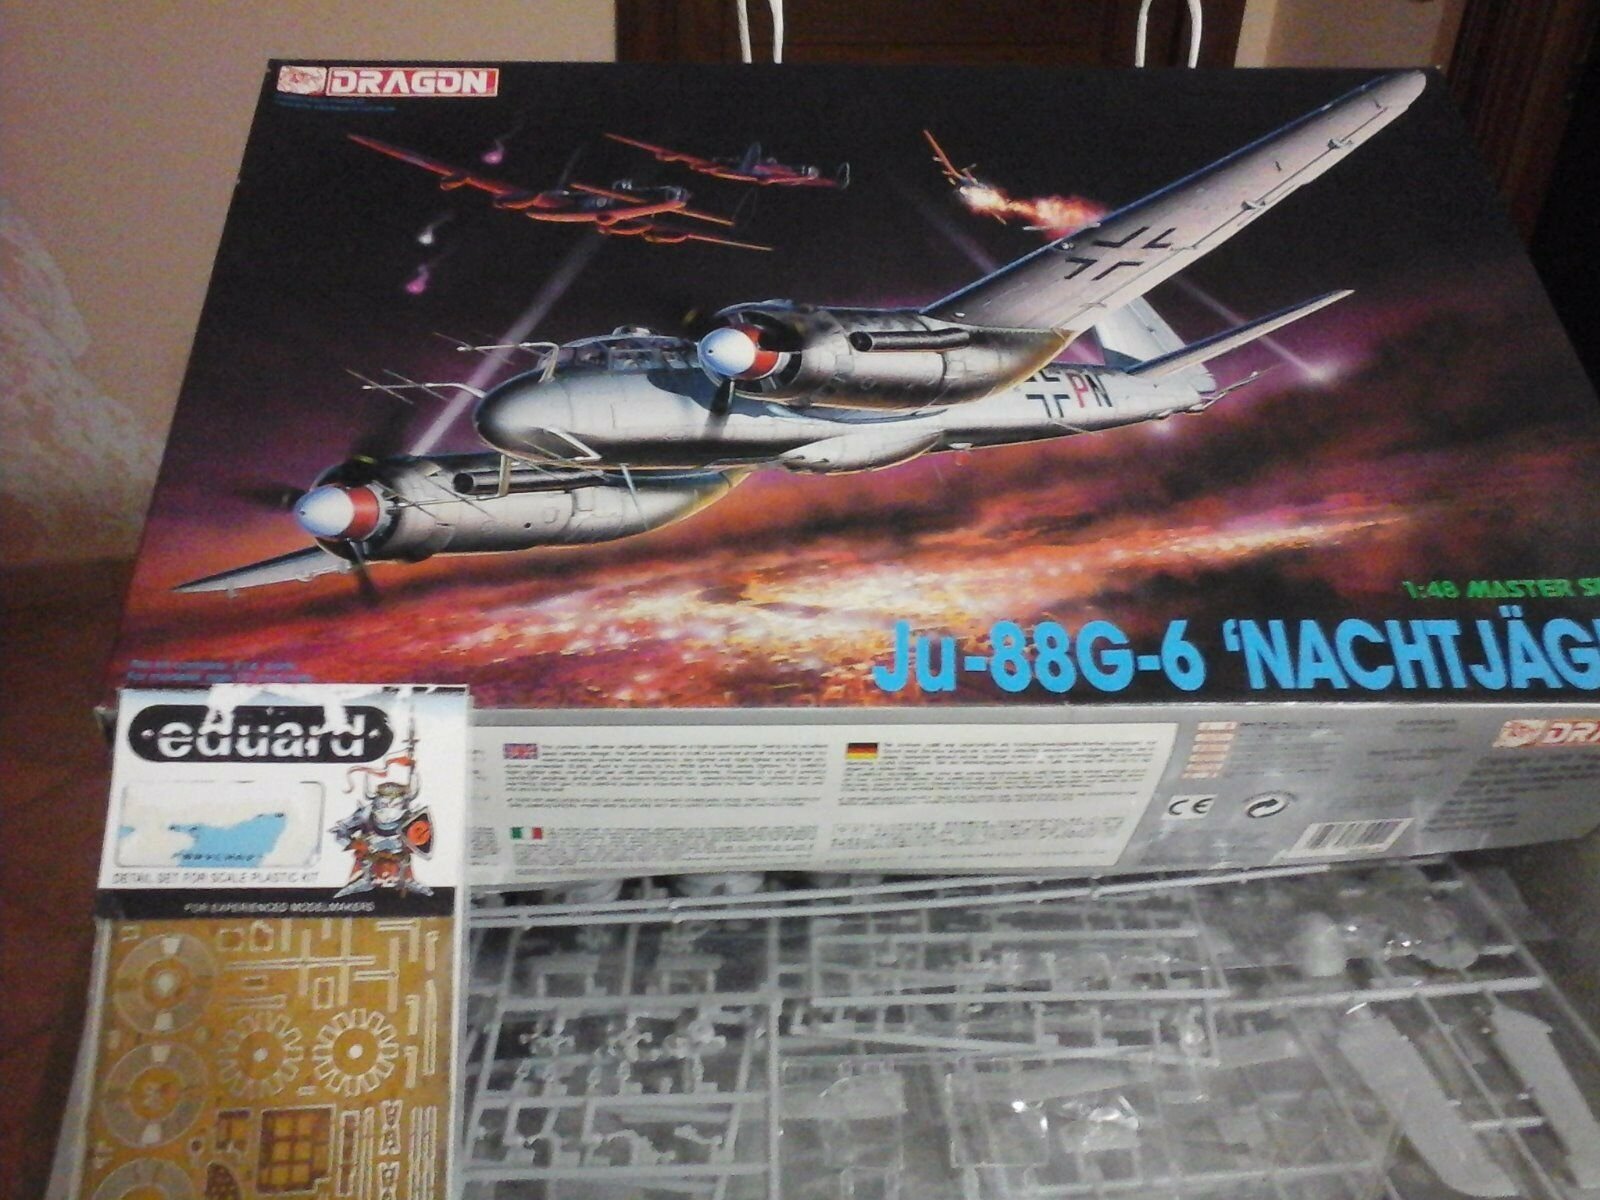 JUNKERS JU-88G-6 NACHTJAGER 1 48 SCALE DRAGON MODEL+PHOTOETCHED PARTS LIMITED ED